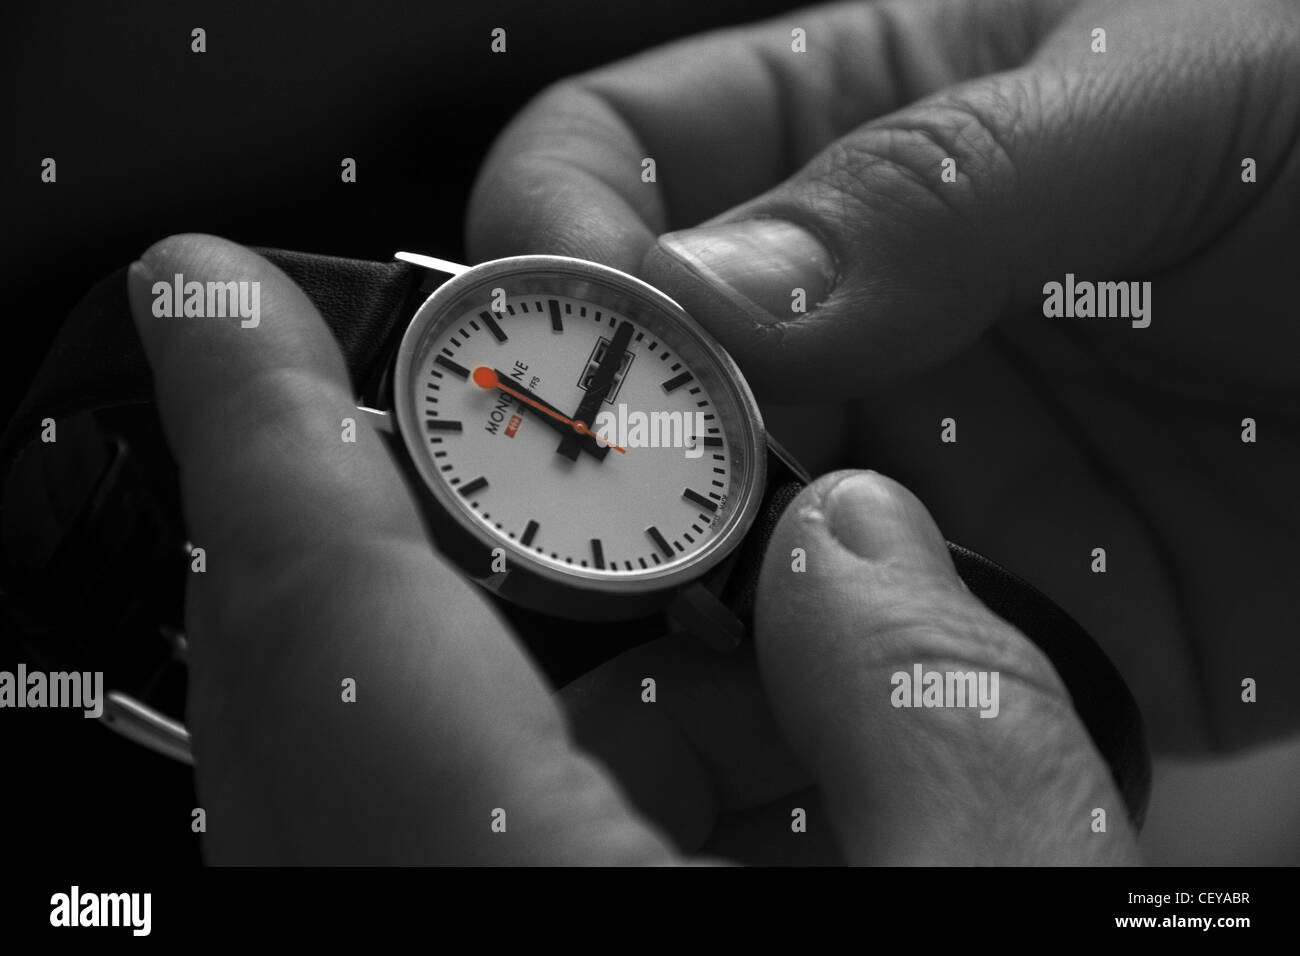 Resetting a watch for daylight saving time or British Summer Time BST by one hour in March and October. - Stock Image